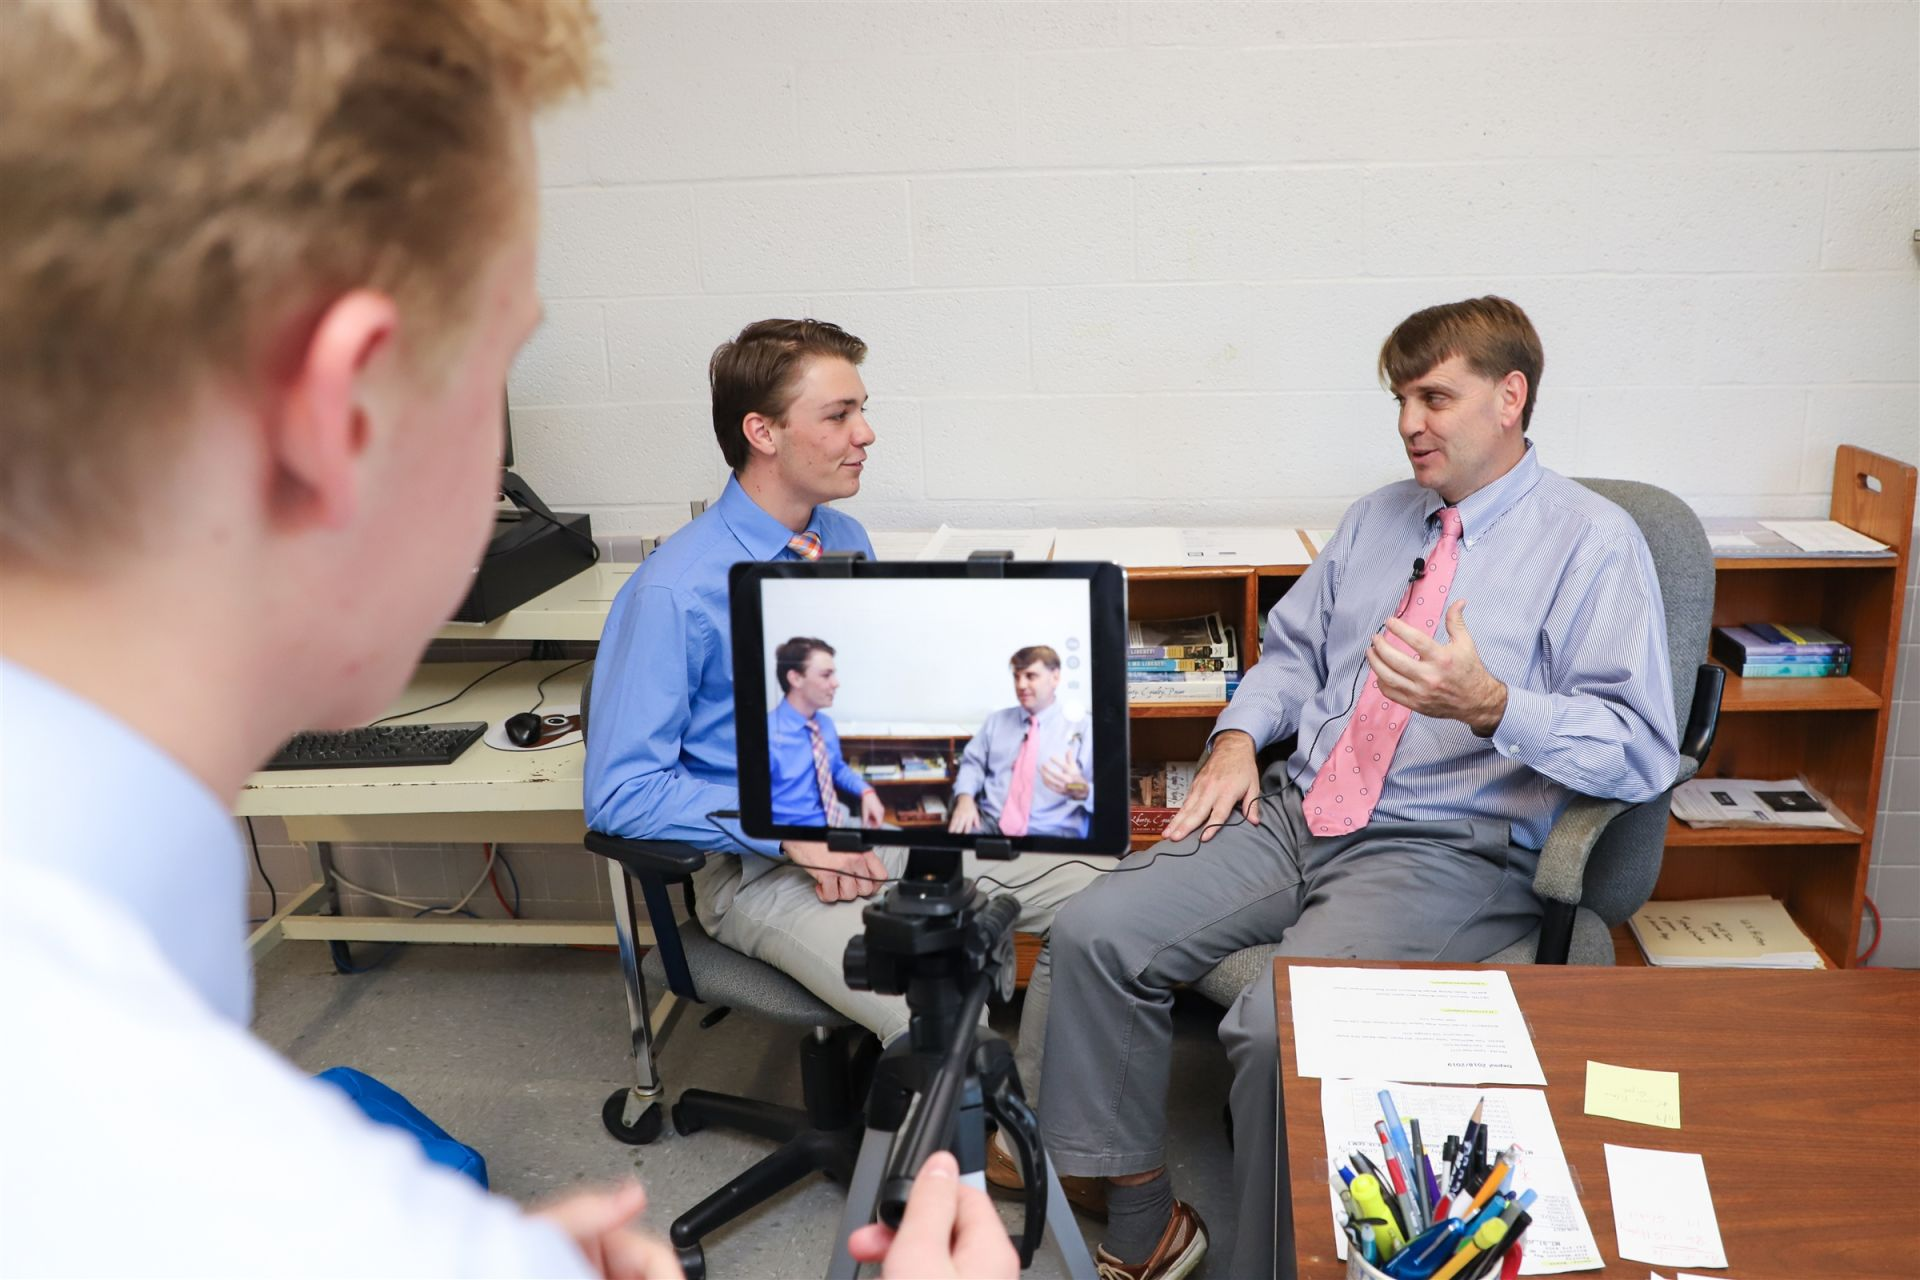 Student conducts interview for live broadcast in Multimedia Journalism class.